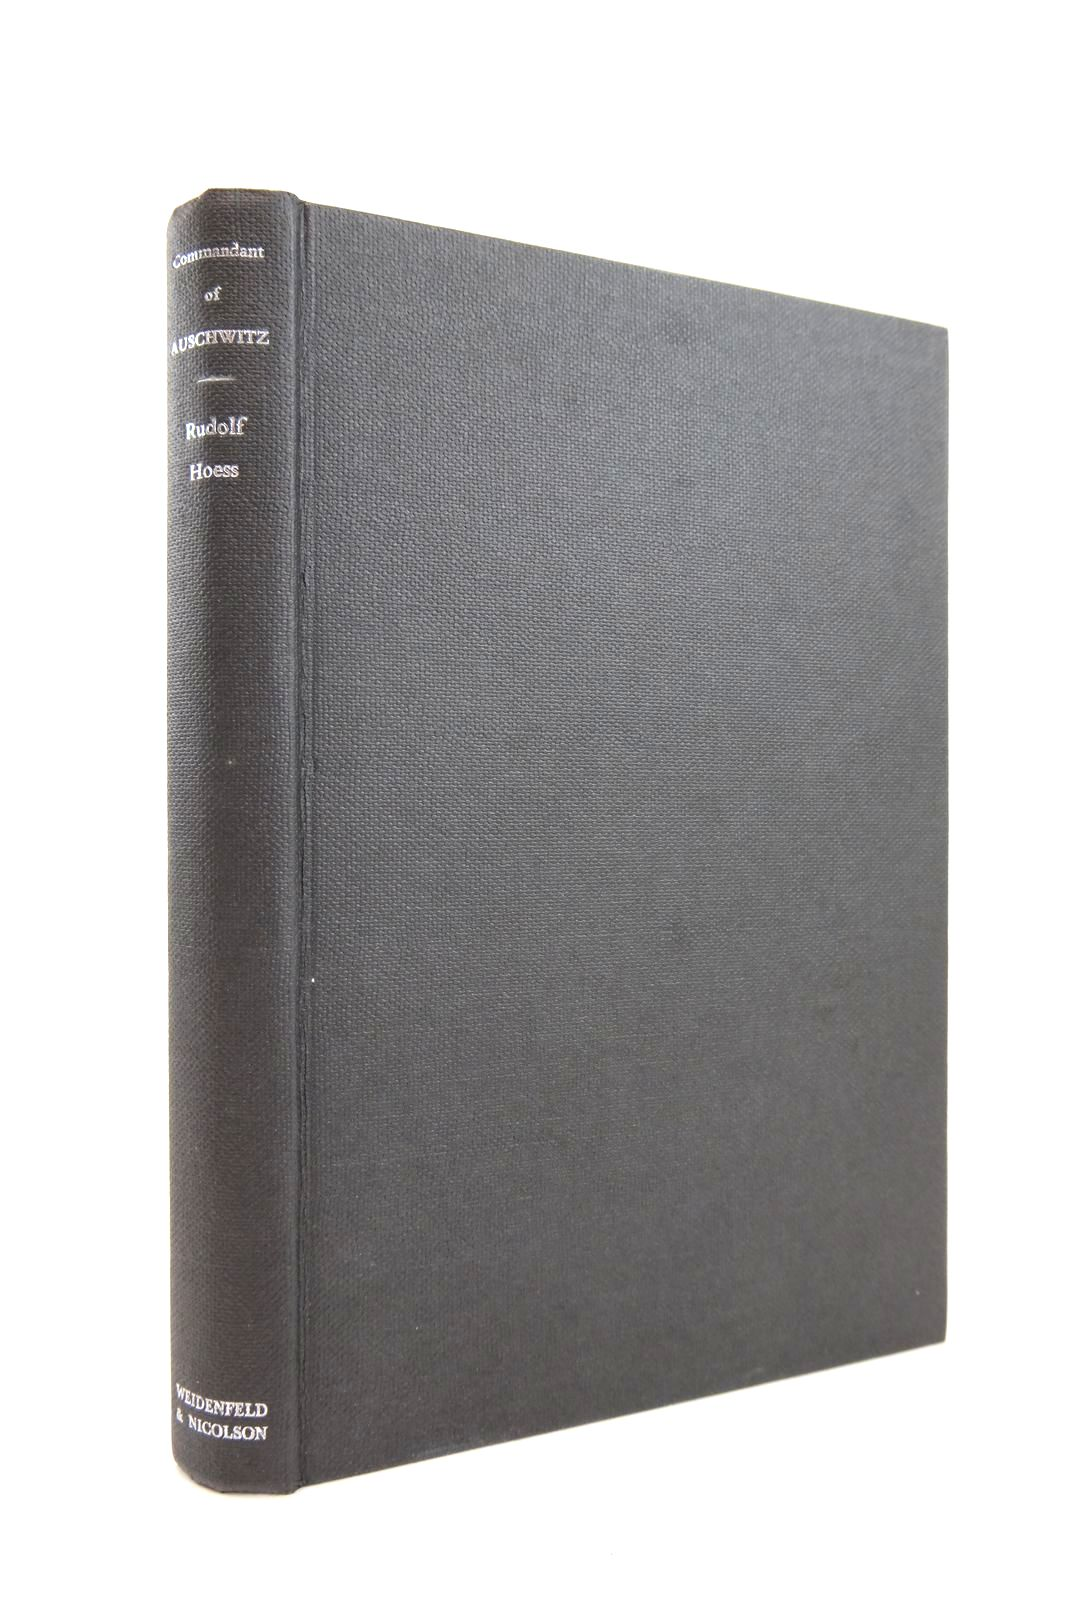 Photo of COMMANDANT OF AUSCHWITZ written by Hoess, Rudolf published by Weidenfeld and Nicolson (STOCK CODE: 2132539)  for sale by Stella & Rose's Books